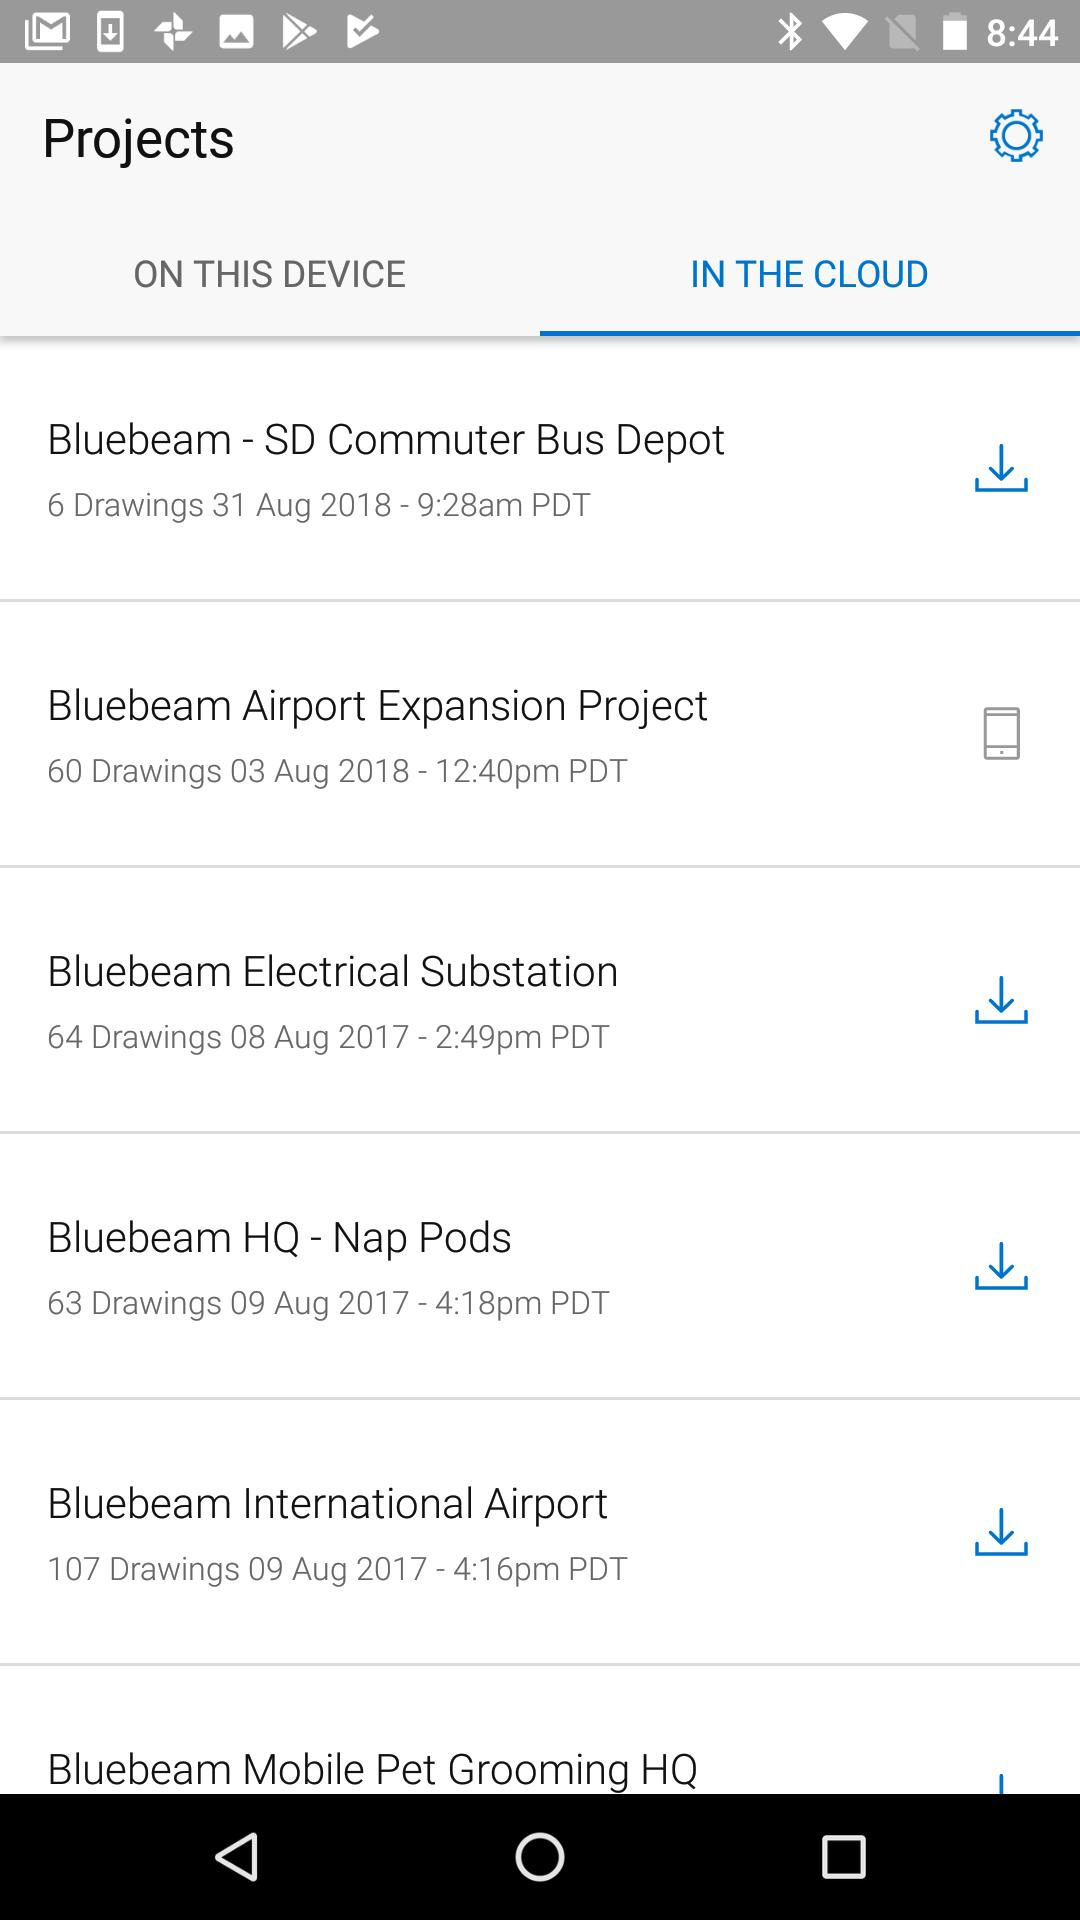 Bluebeam Drawings Android